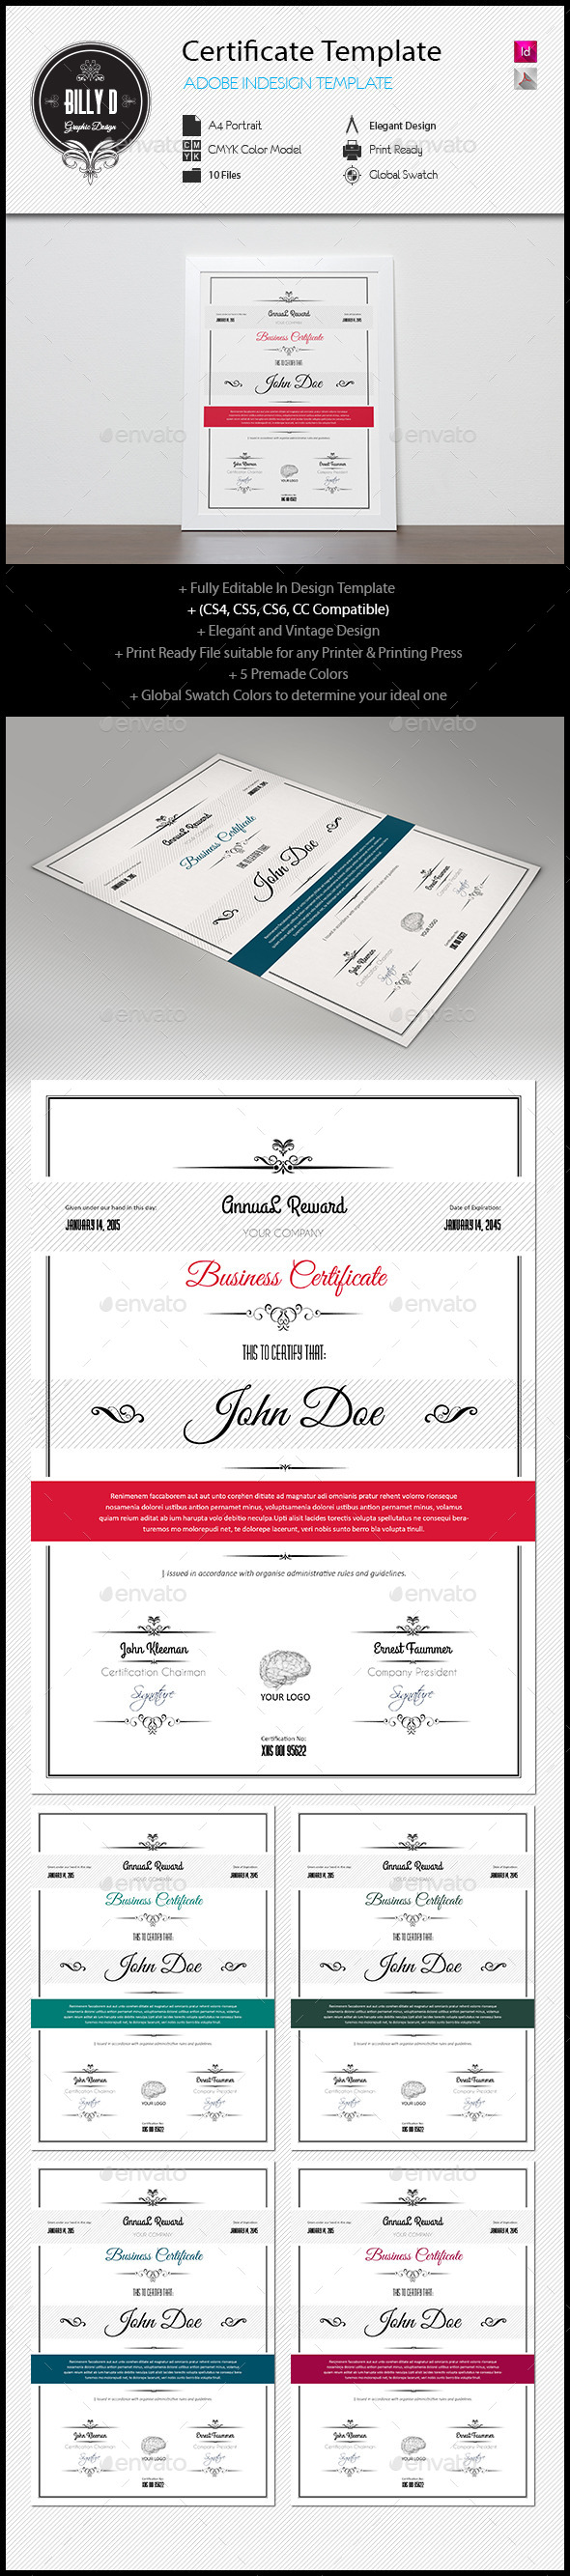 Certificate template certificate template and print templates certificate template cs4 21x297 a4 certificate certificate certificate template yelopaper Image collections